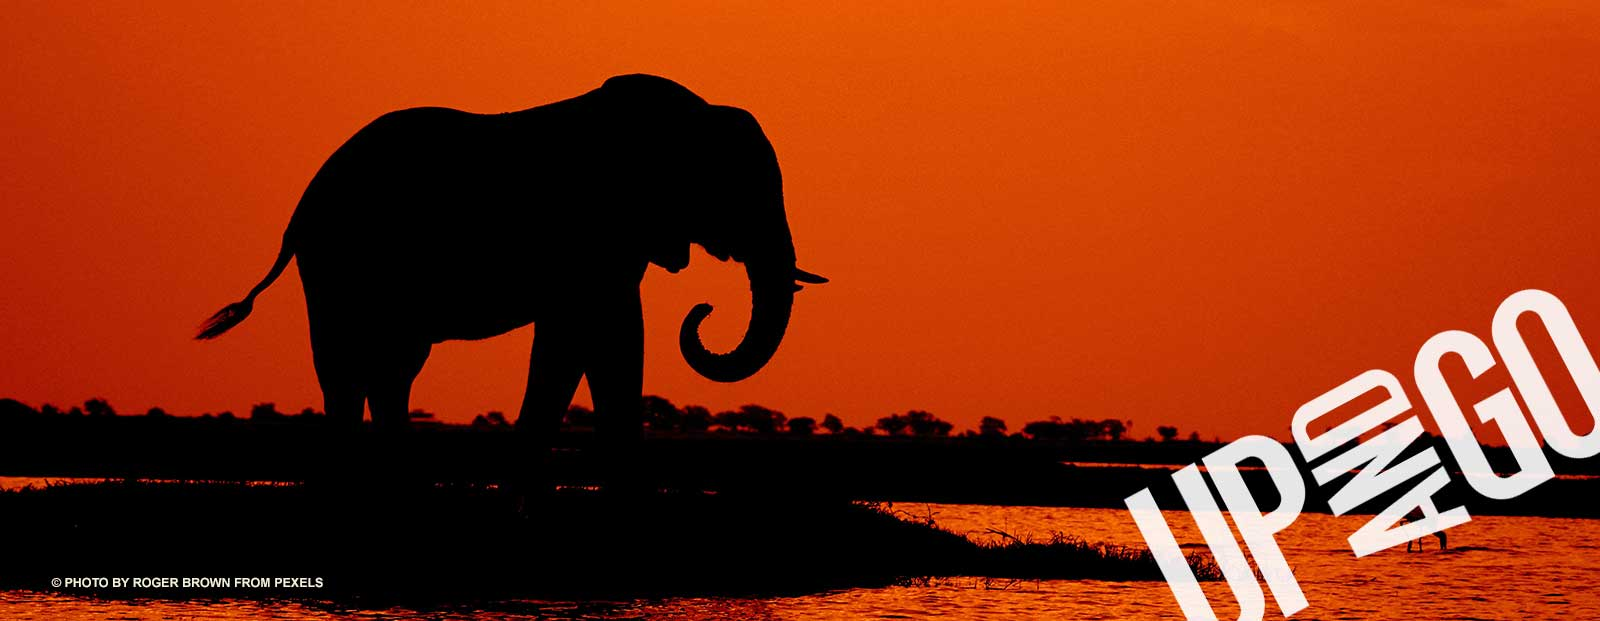 upandgo-accommodation-botswana-elephants-sunsets.jpg